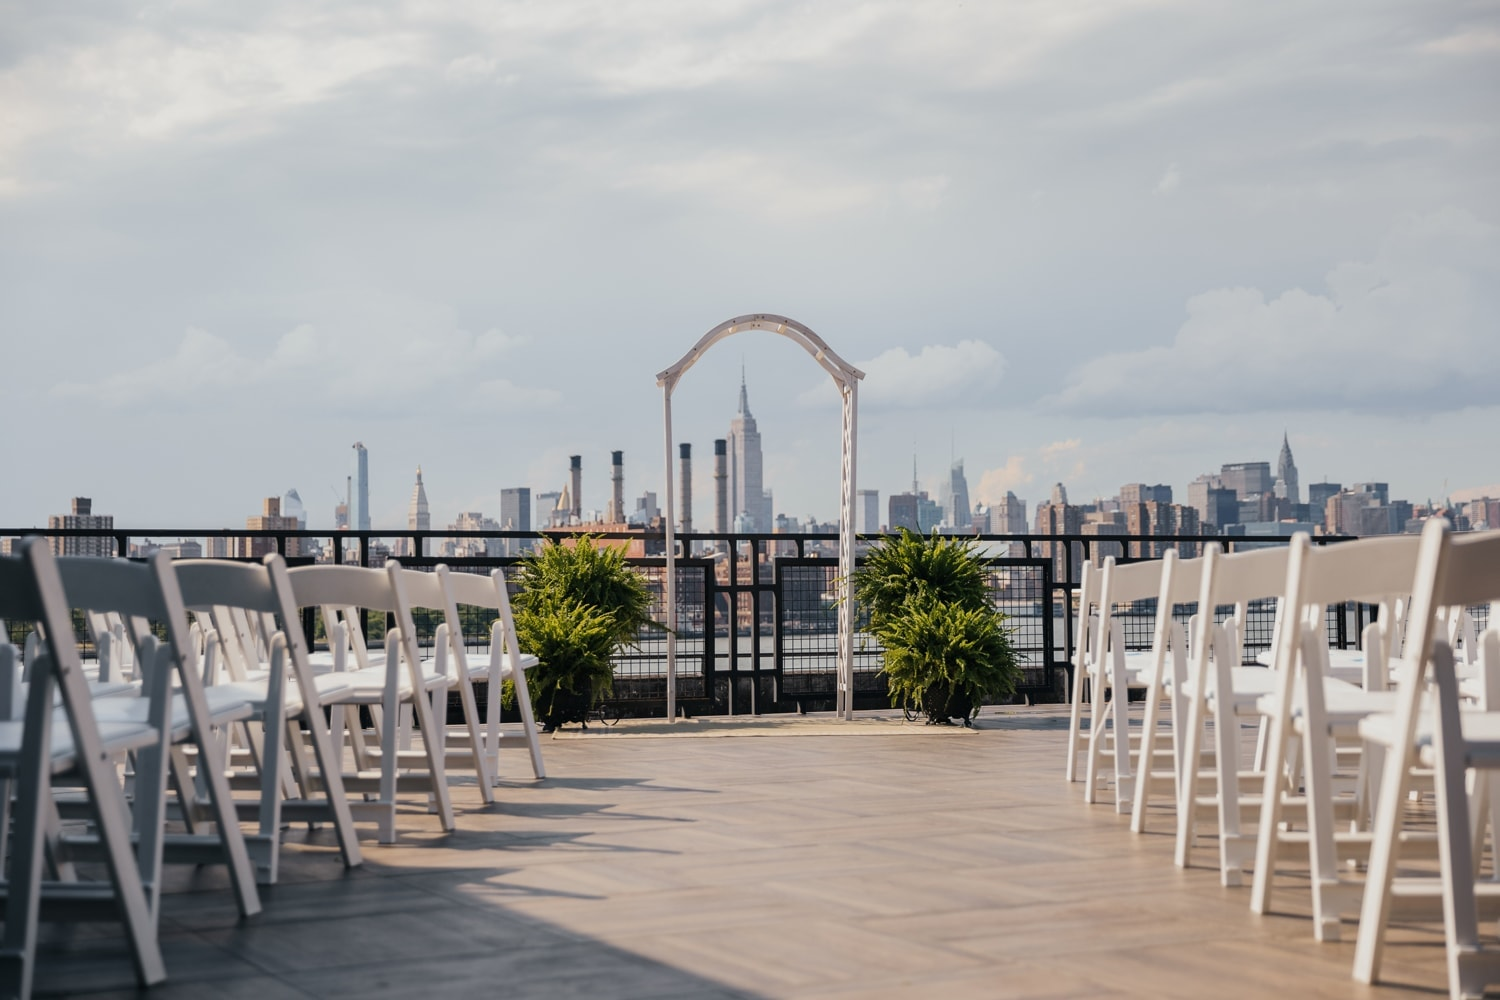 W Loft outdoor wedding ceremony setting